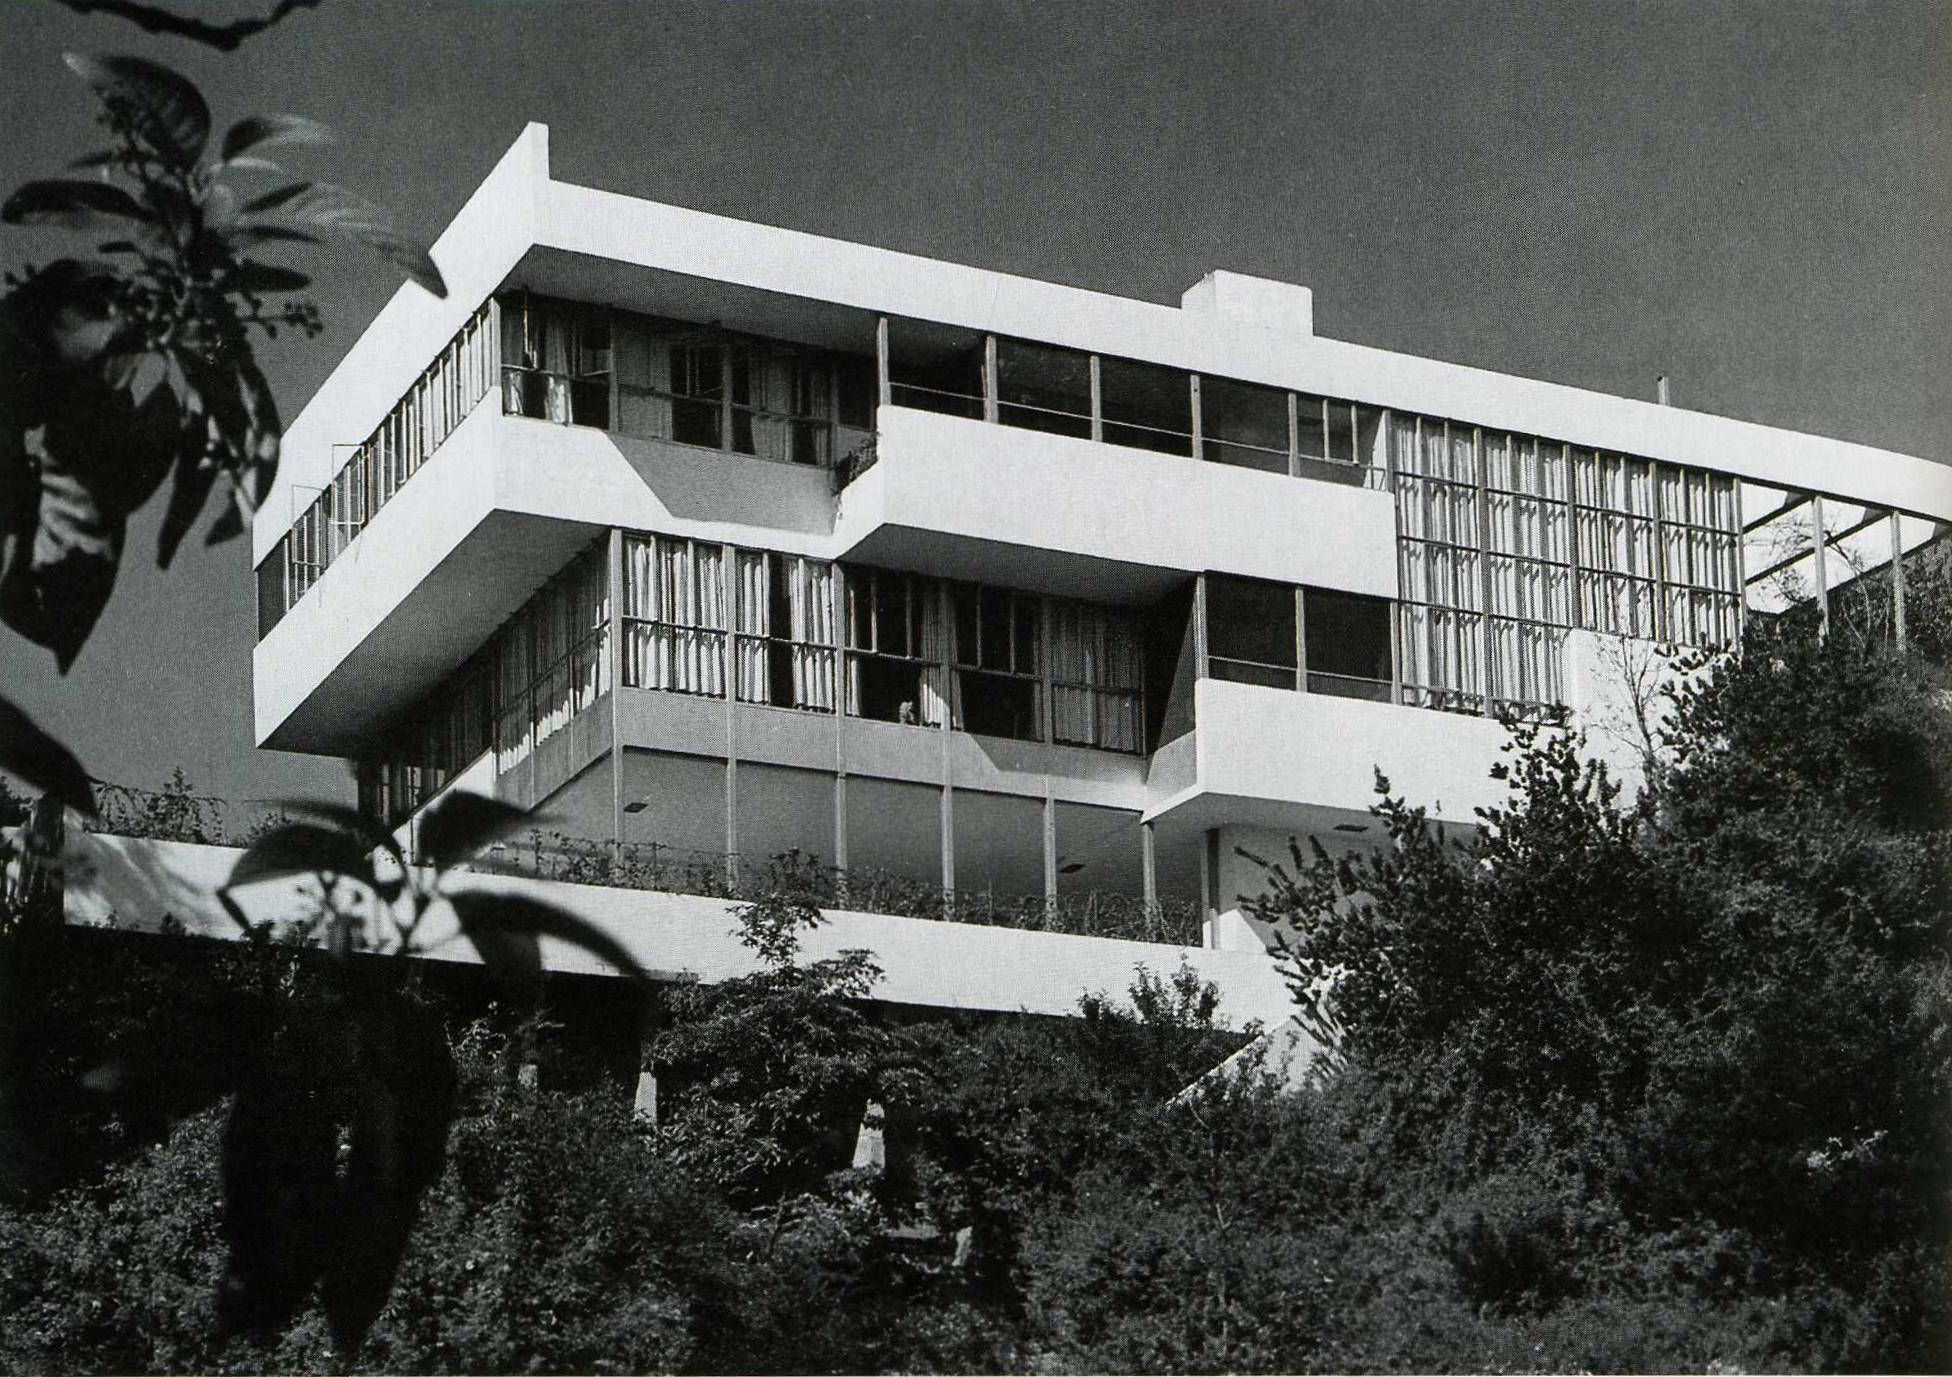 The Threat Hanging Over LA's Modernist Homes, Richard Neutra's 1929 Lovell House. Image Courtesy of Wikiarquitectura